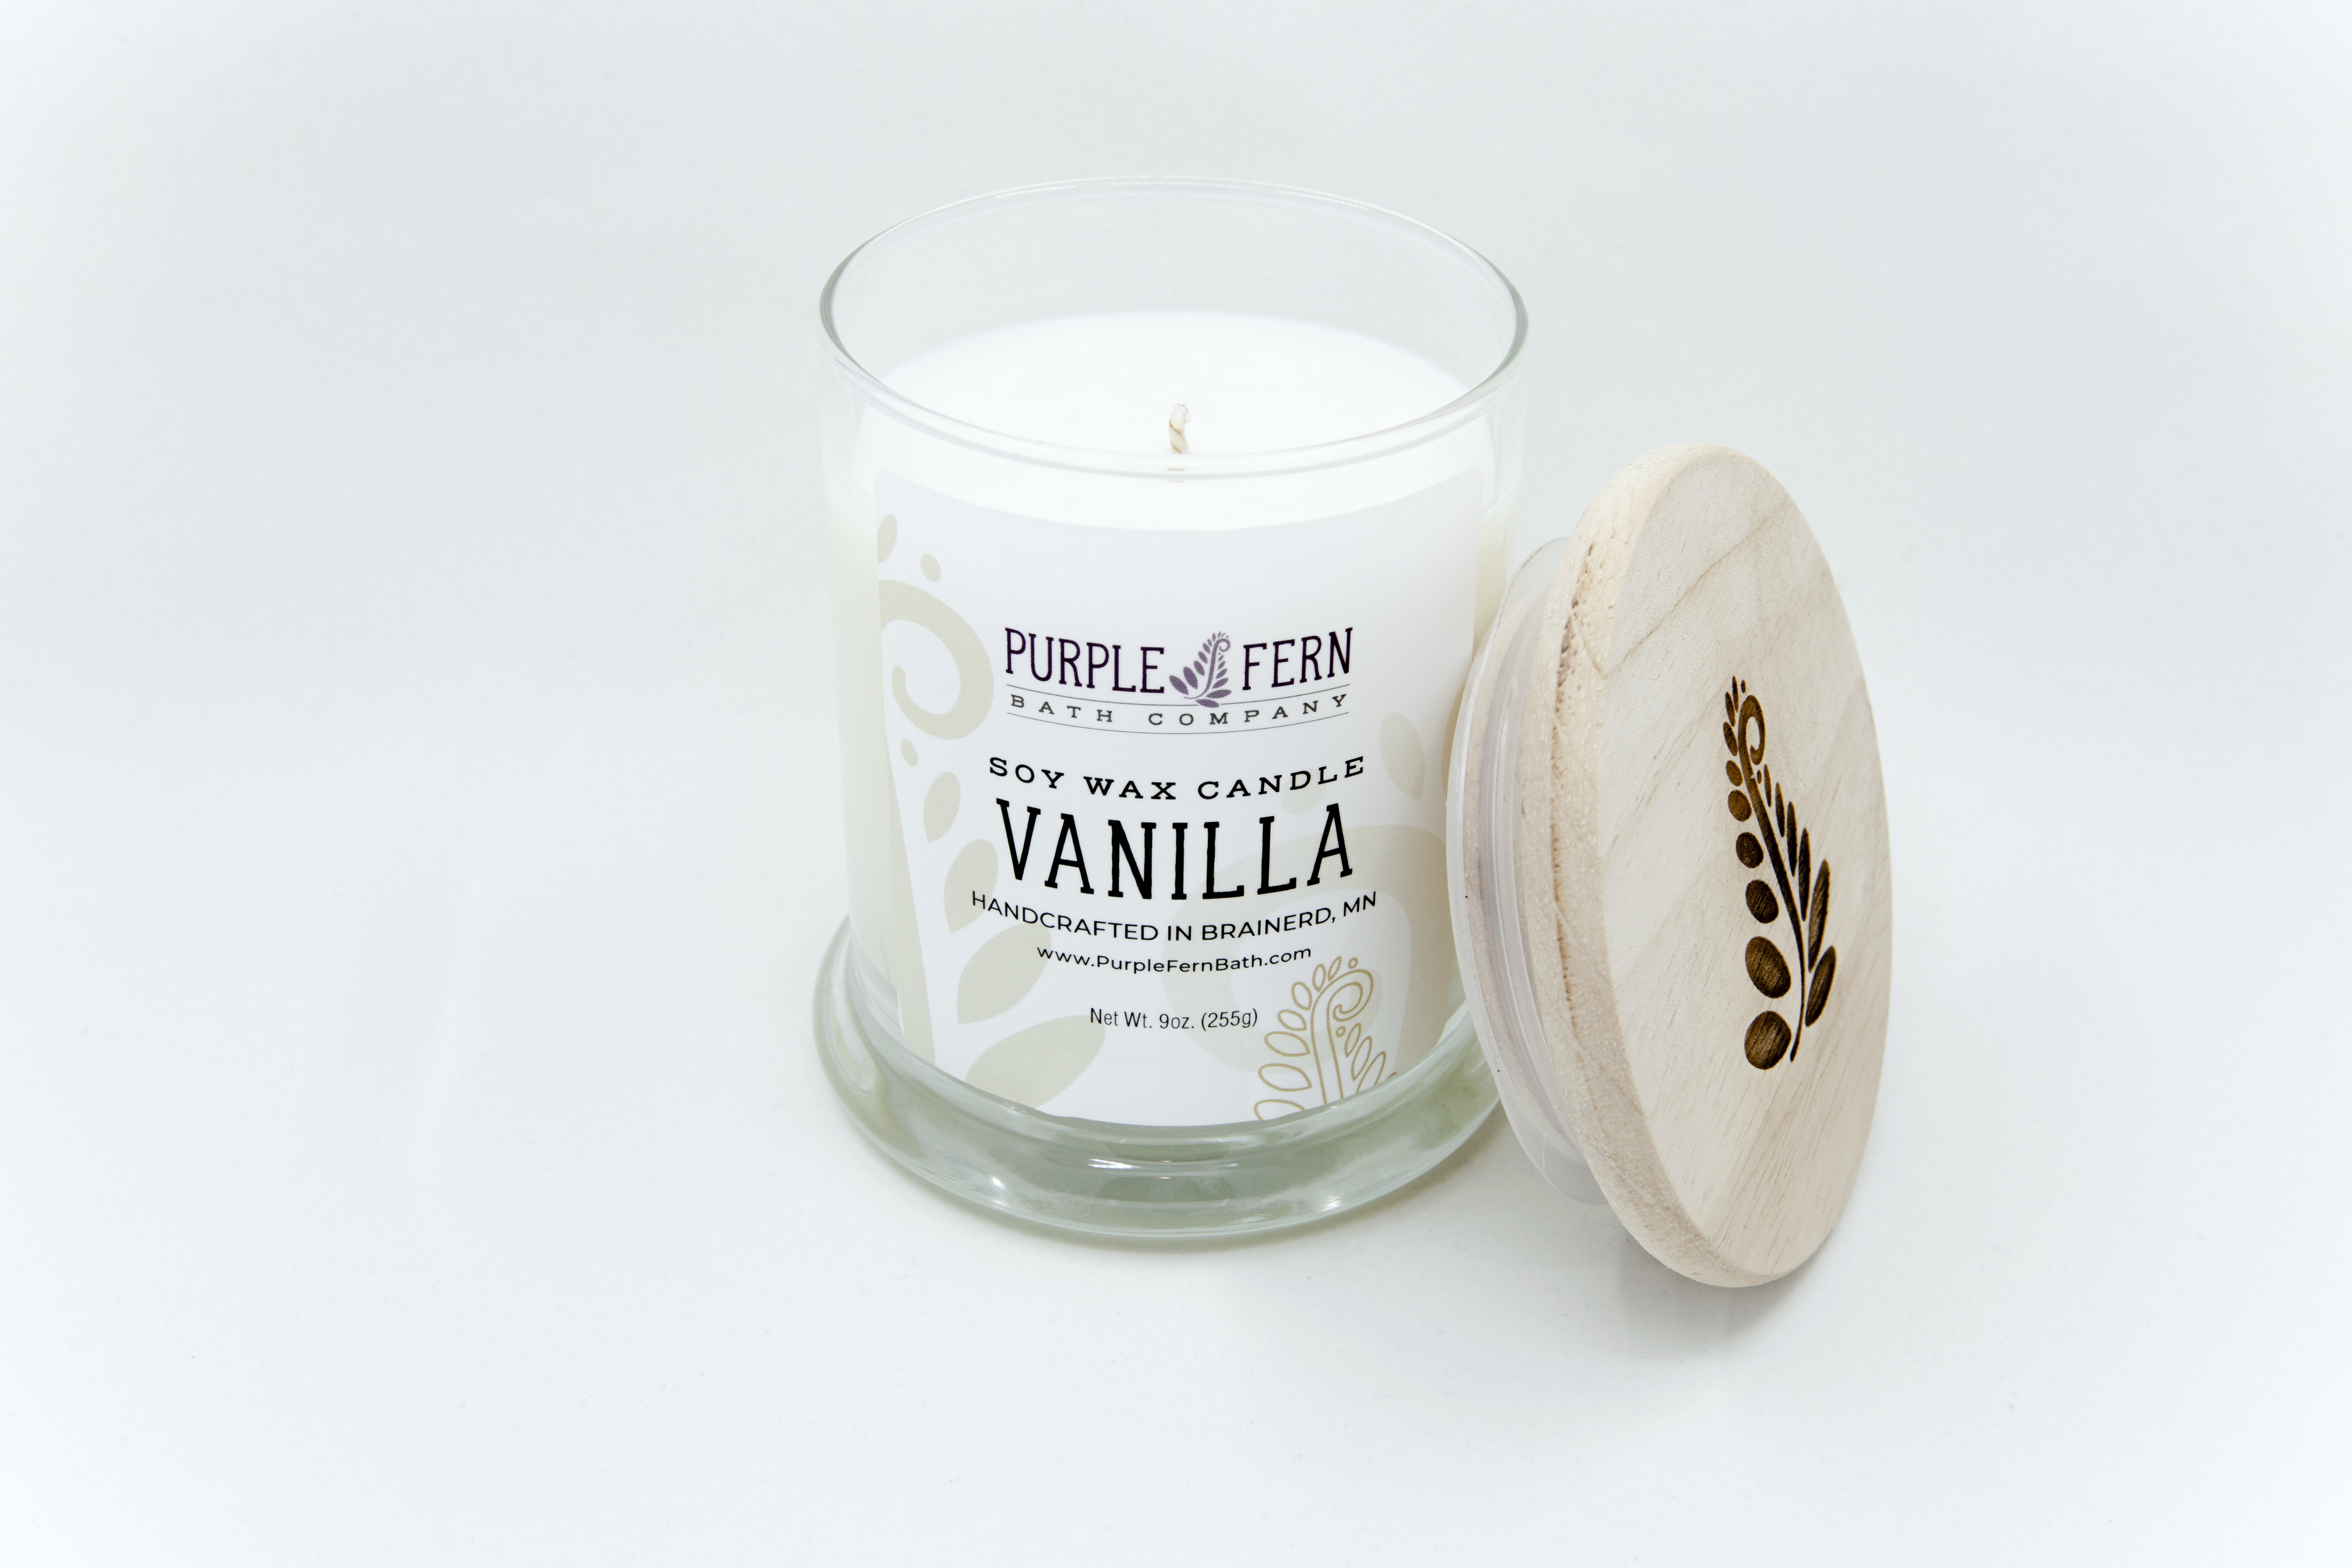 vanilla soy wax candle glass jar handcrafted